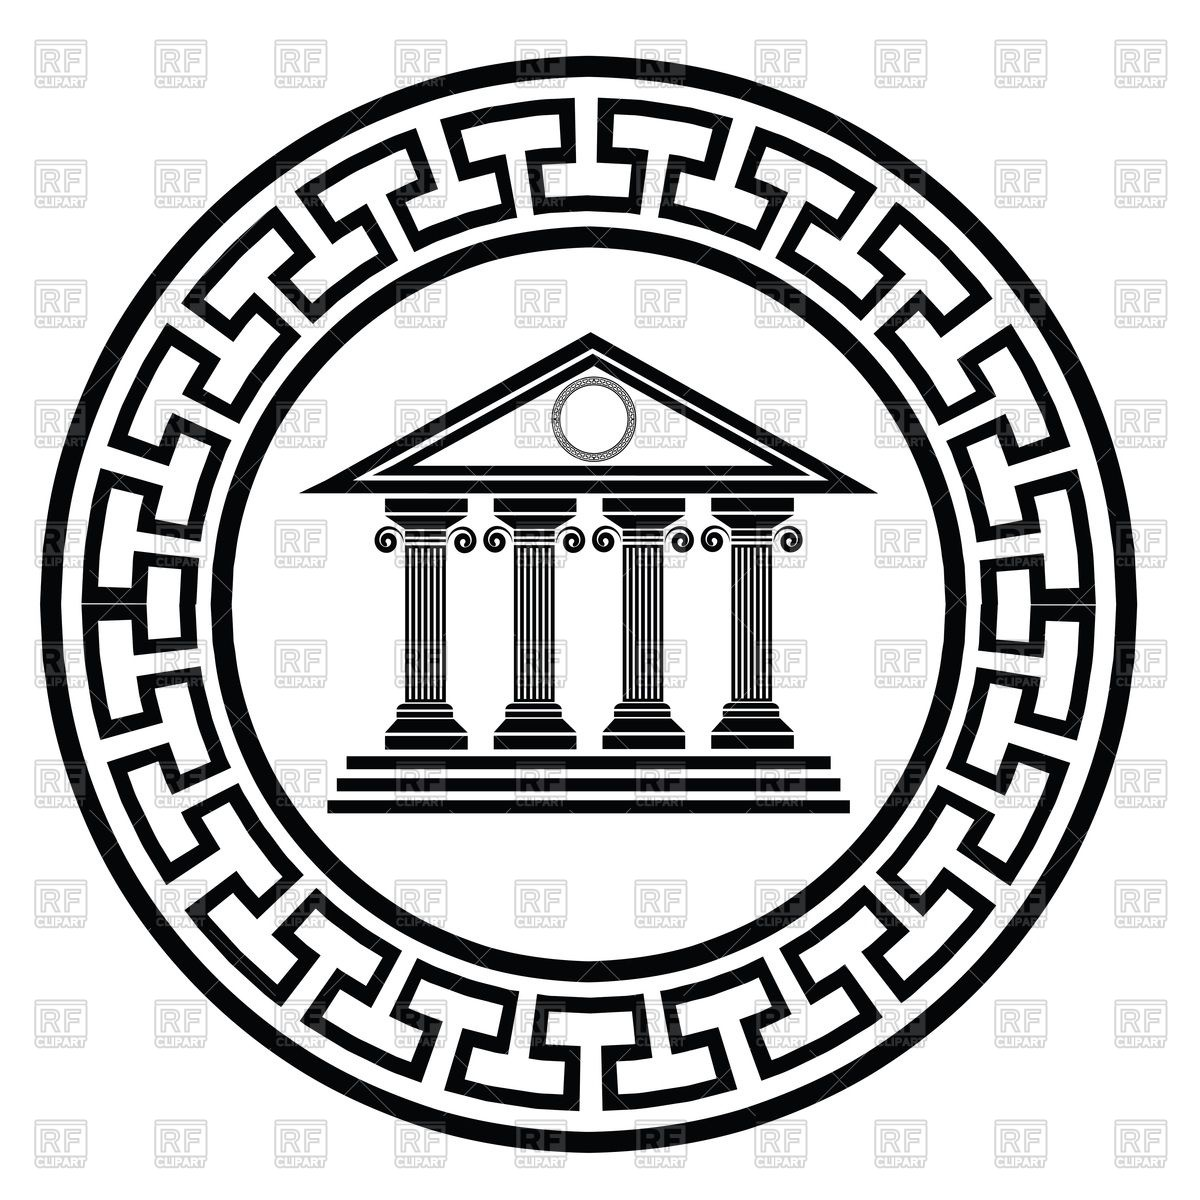 Greek temples clipart picture black and white Ancient greek temple in round frame Vector Image #47796 – RFclipart picture black and white